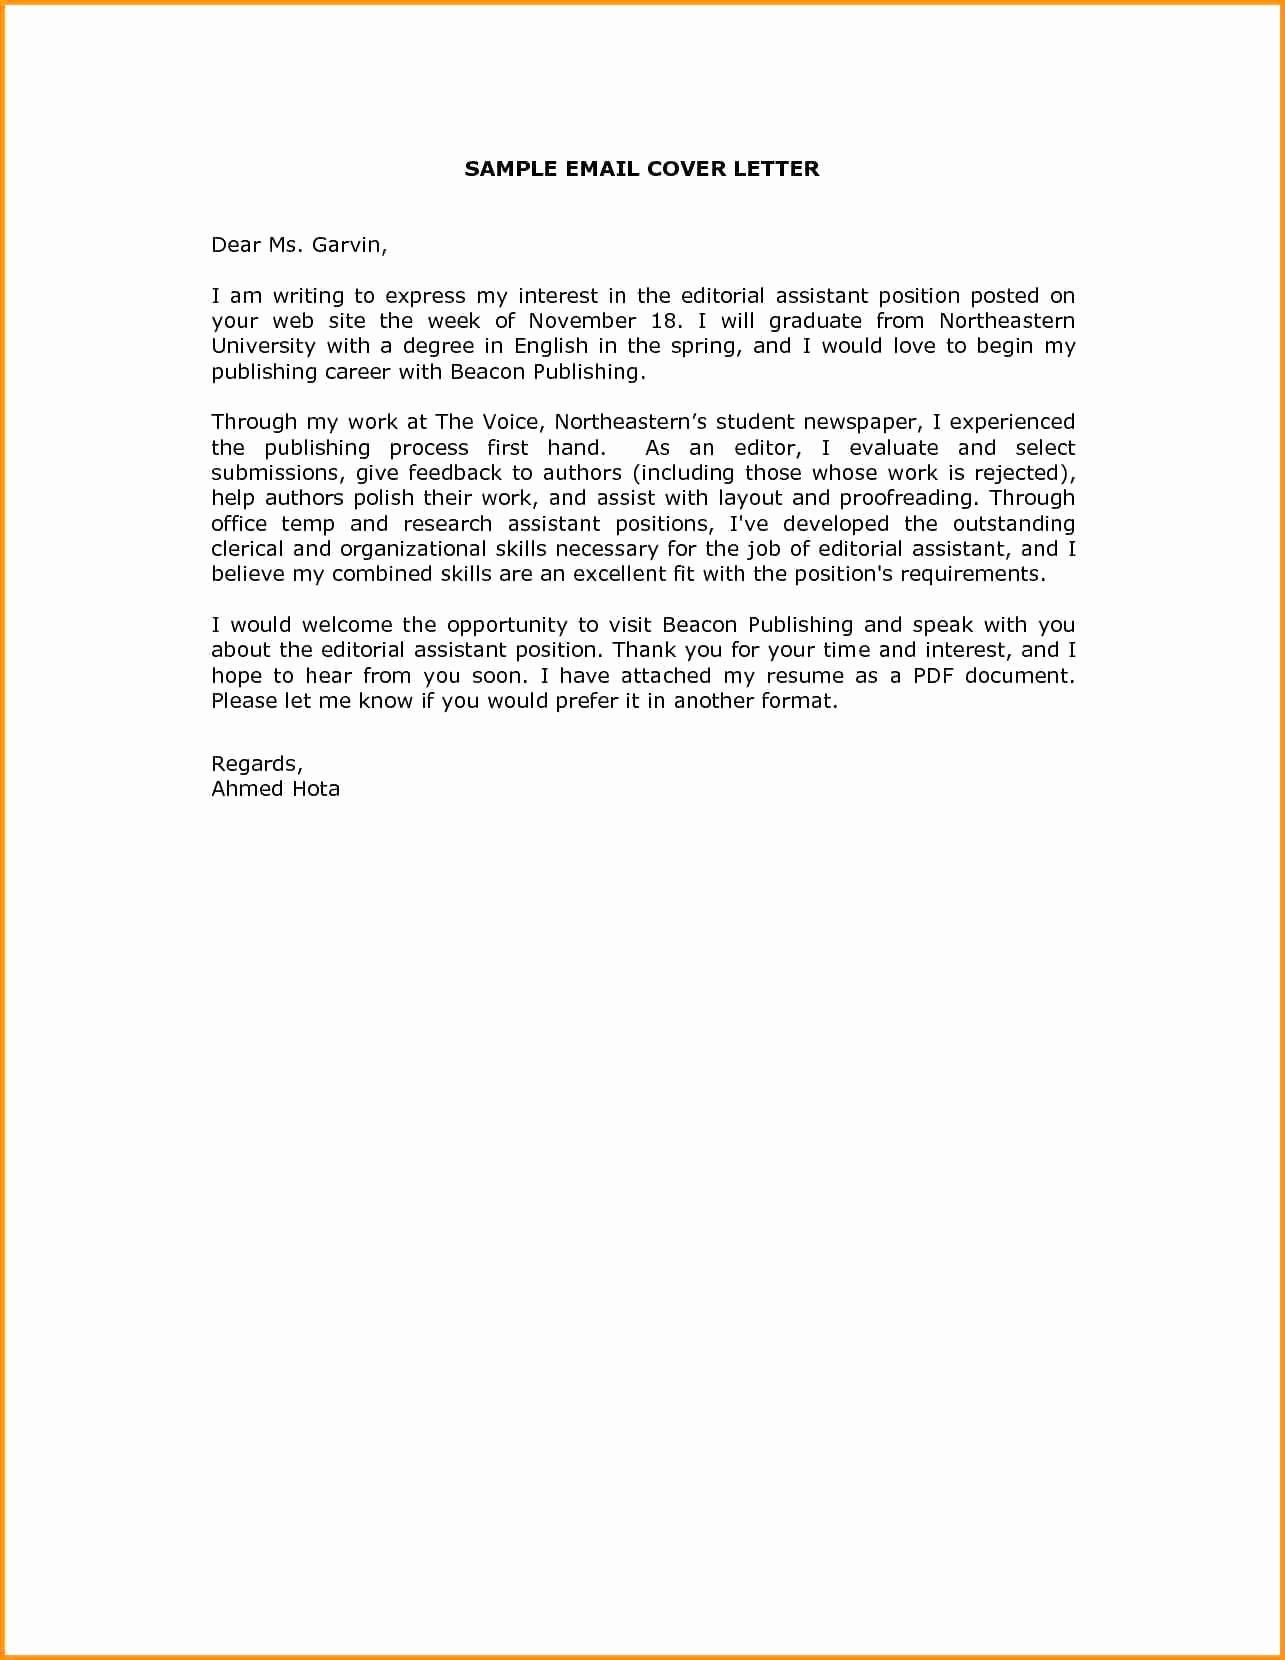 Submittal Cover Letter Template - Inspirational Email Cover Letter Template